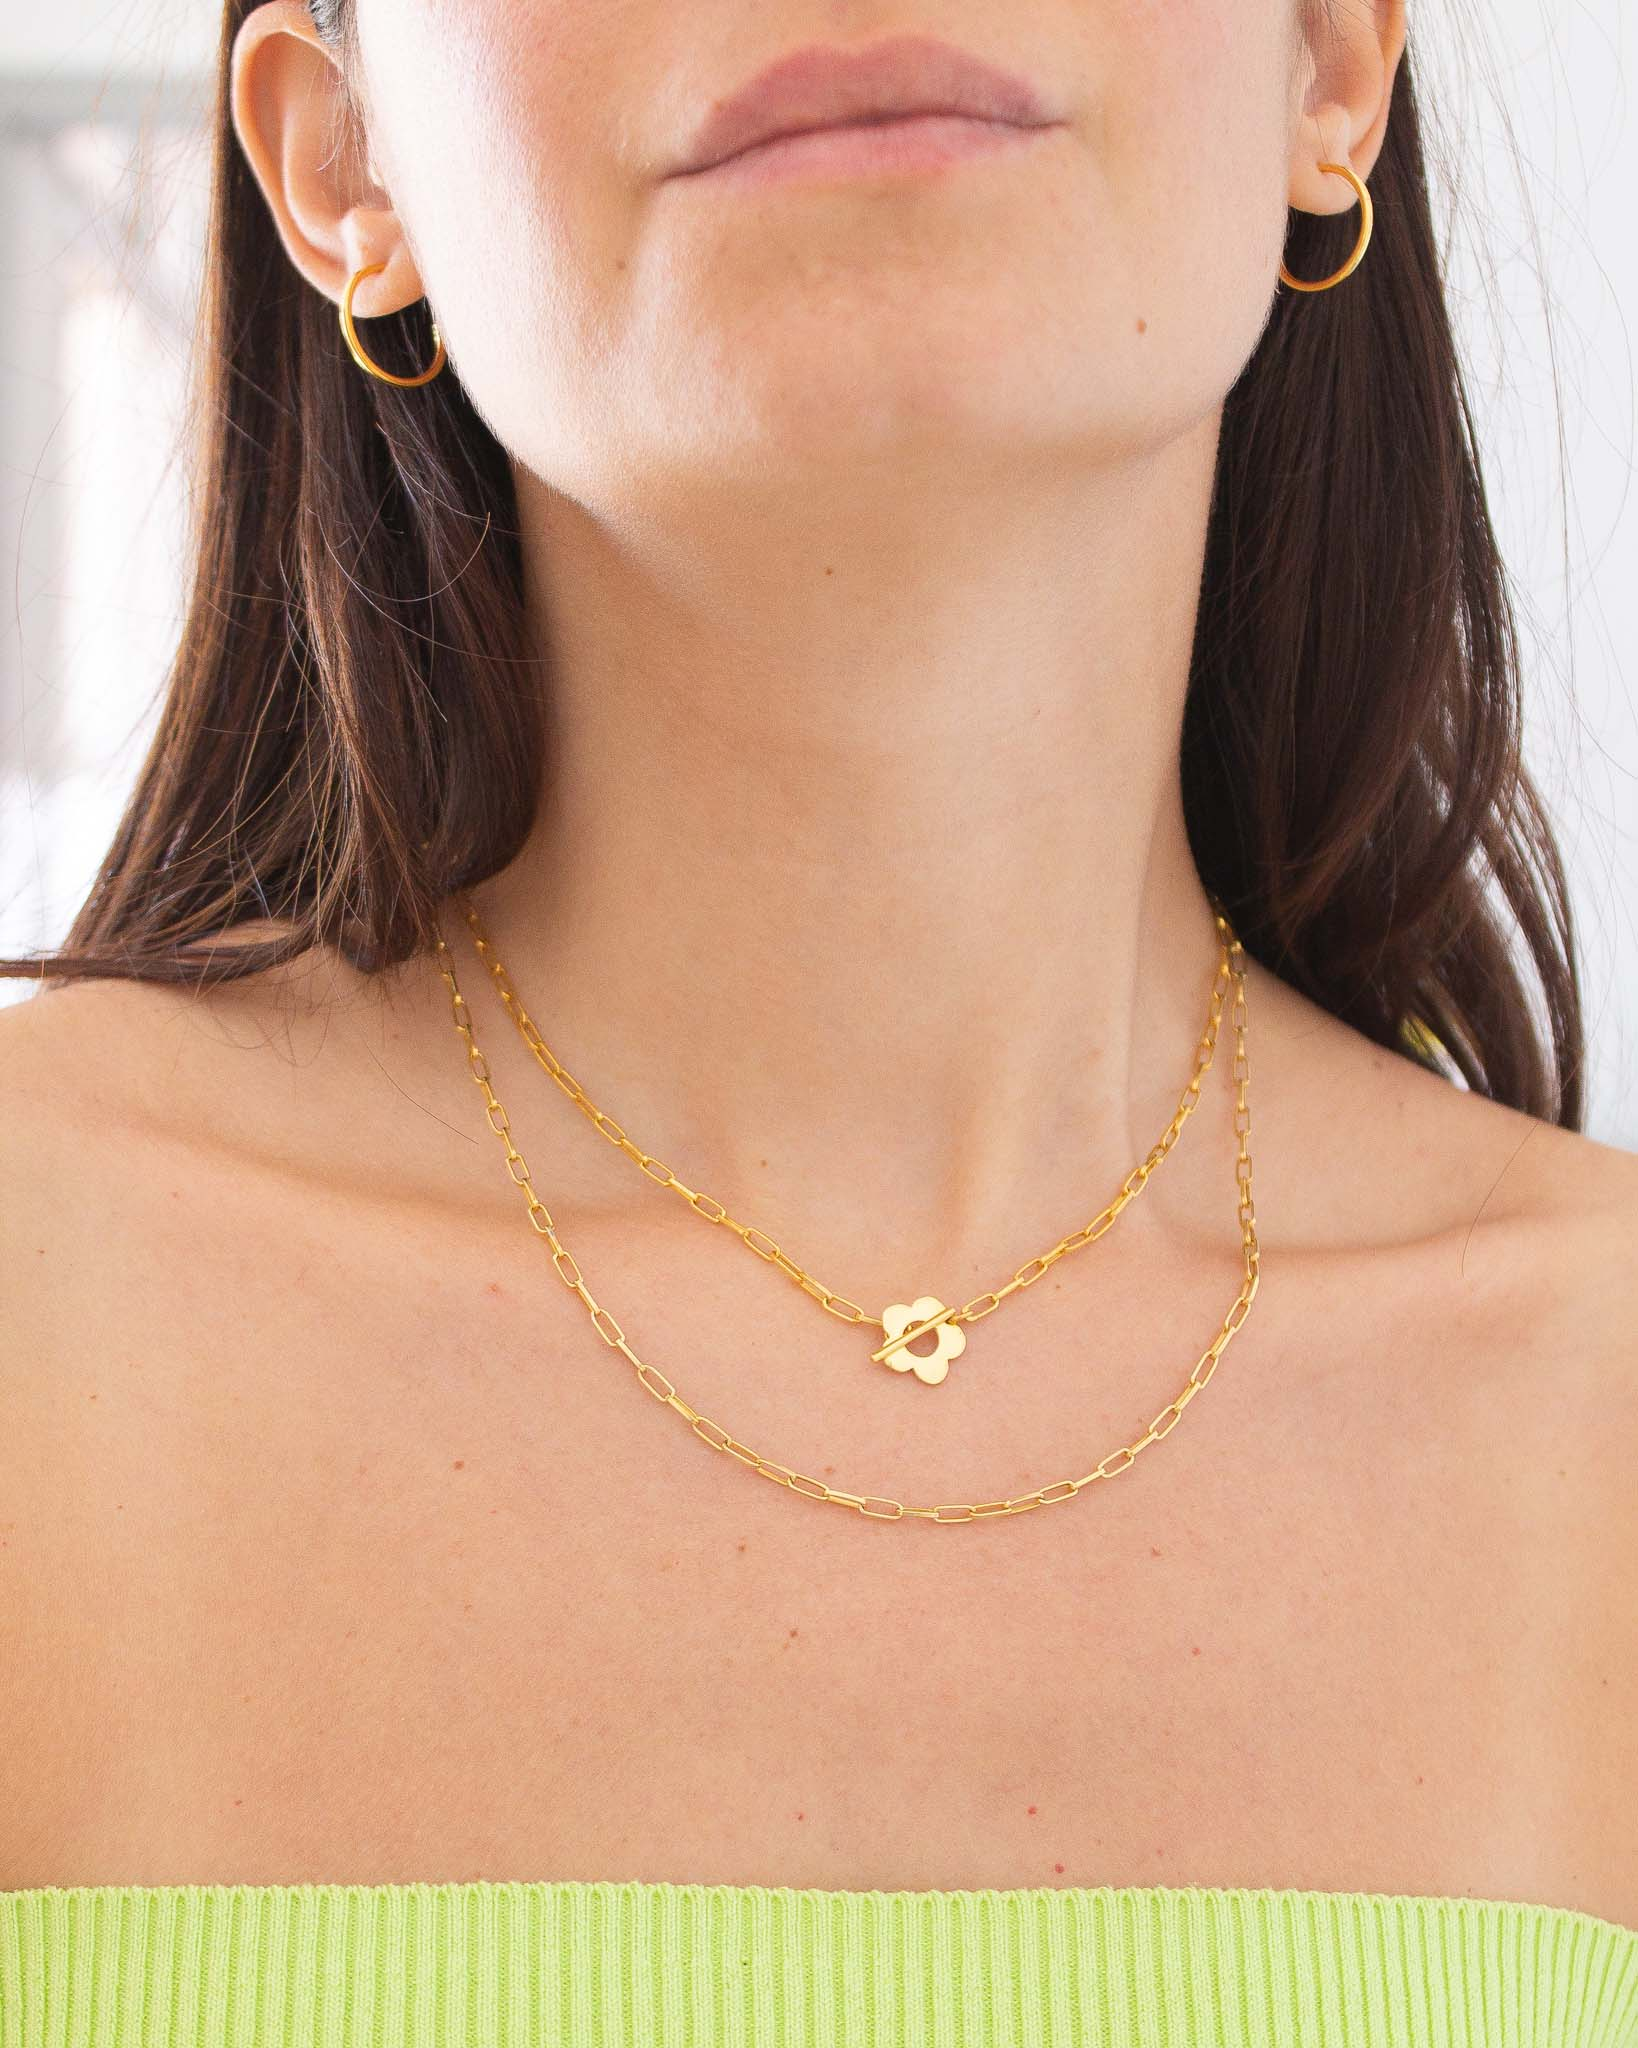 Daisy blossom layered look necklaces